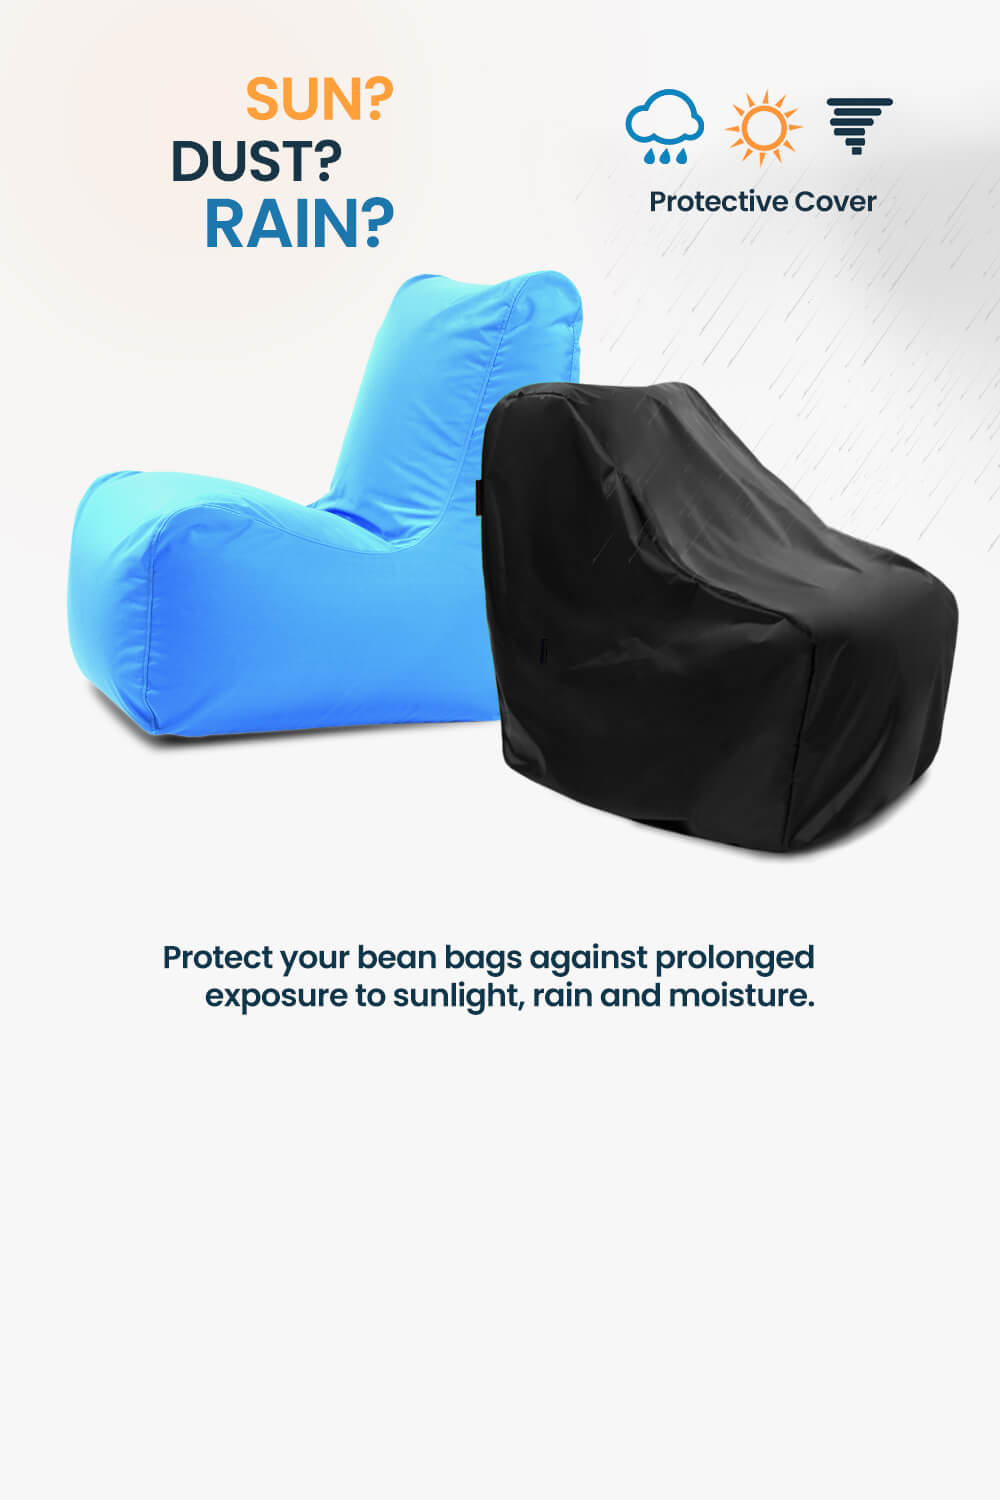 Protective covers for your bean bags!